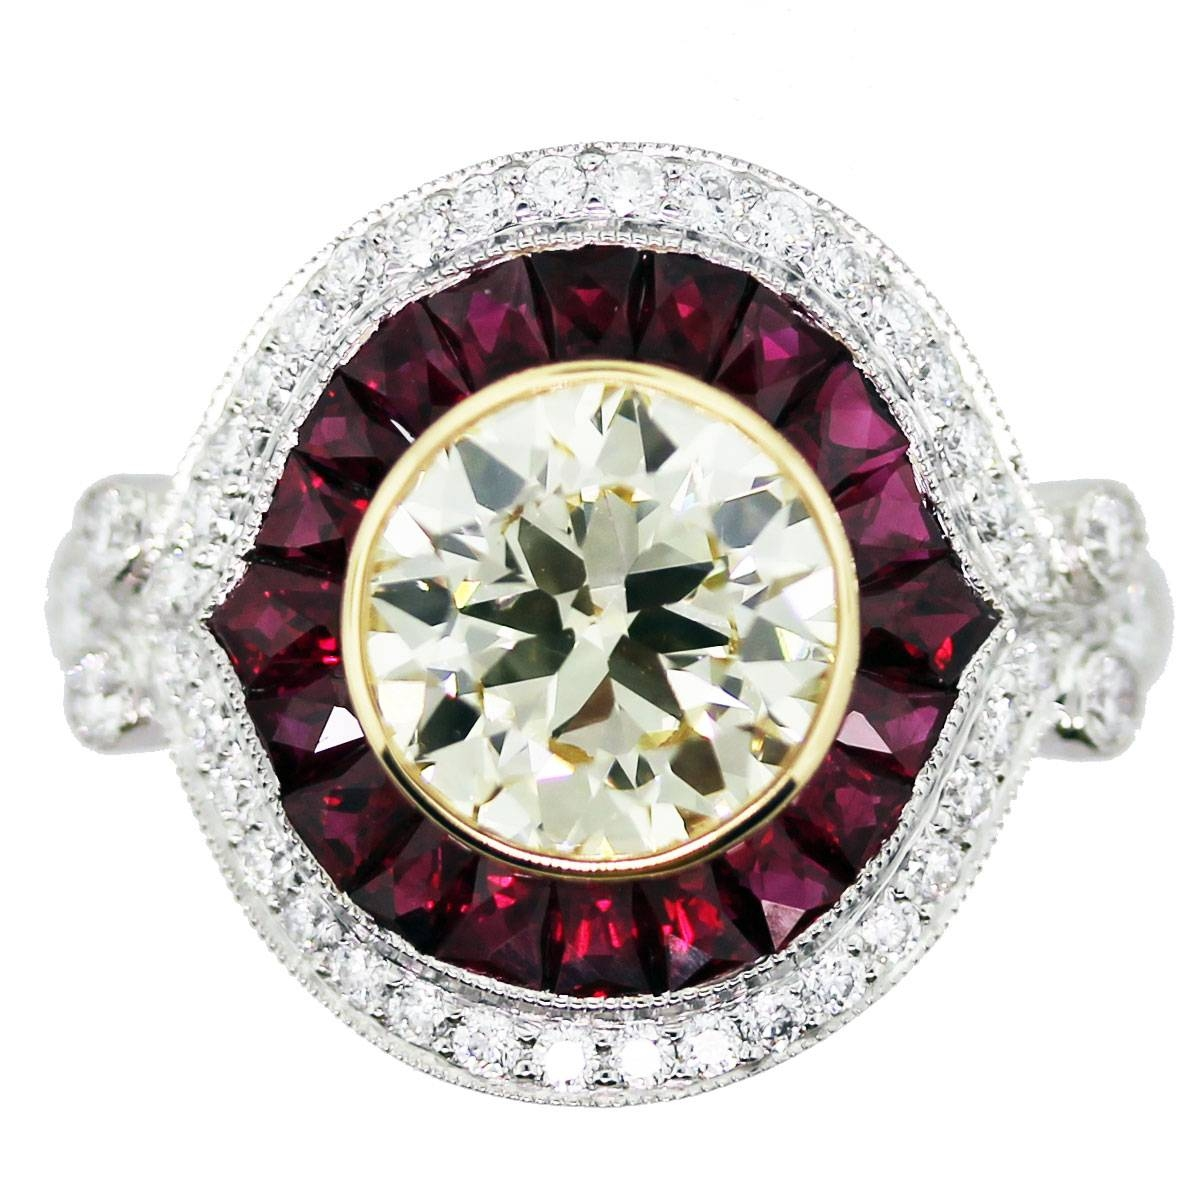 2 Carat Halo Style Engagement Ring Boca Raton With Regard To Diamond And Ruby Engagement Rings (View 12 of 15)